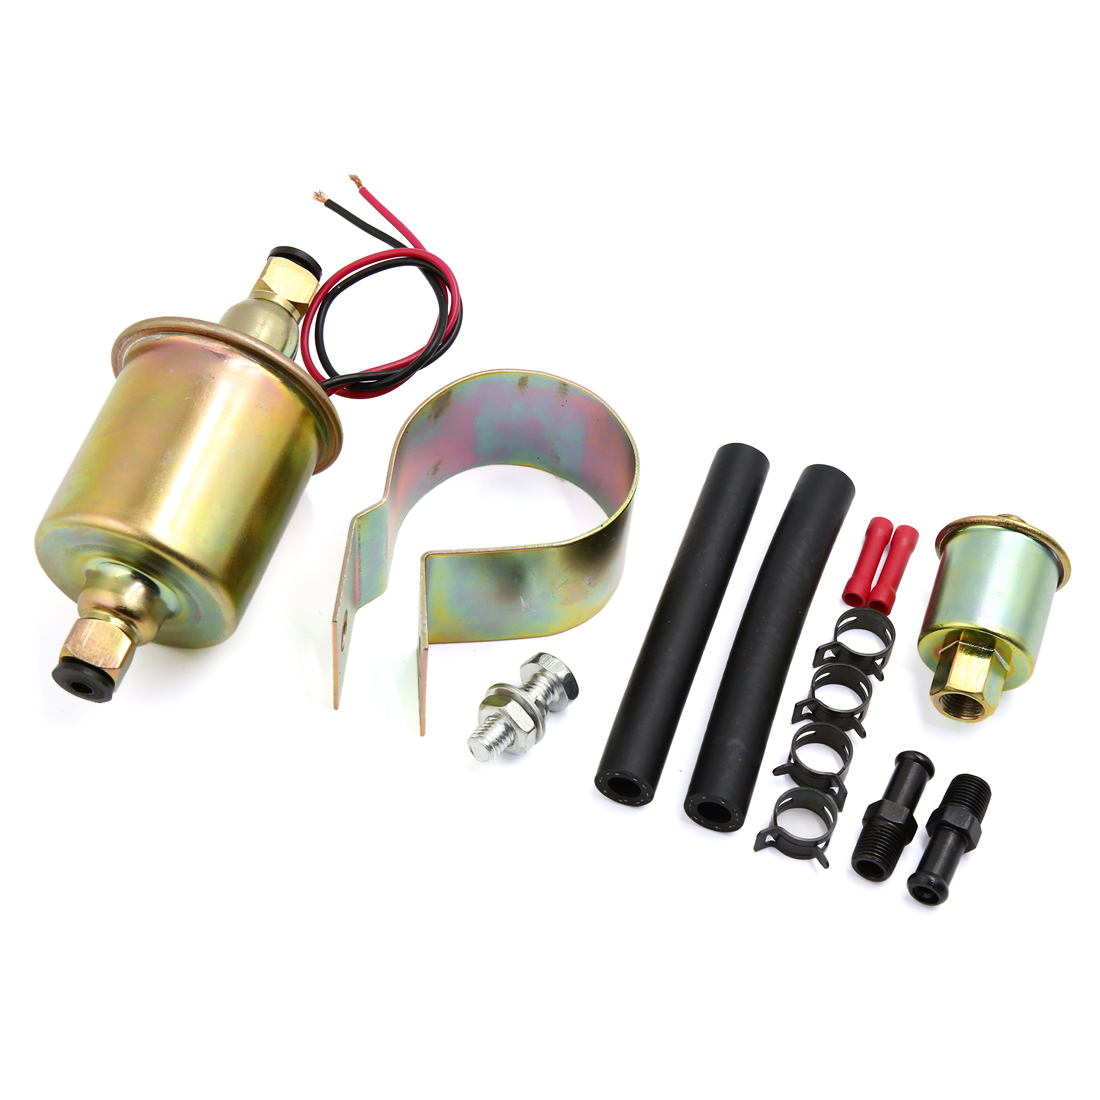 New Automotive Universal Electric Fuel Pump With Installation Kit E8016S